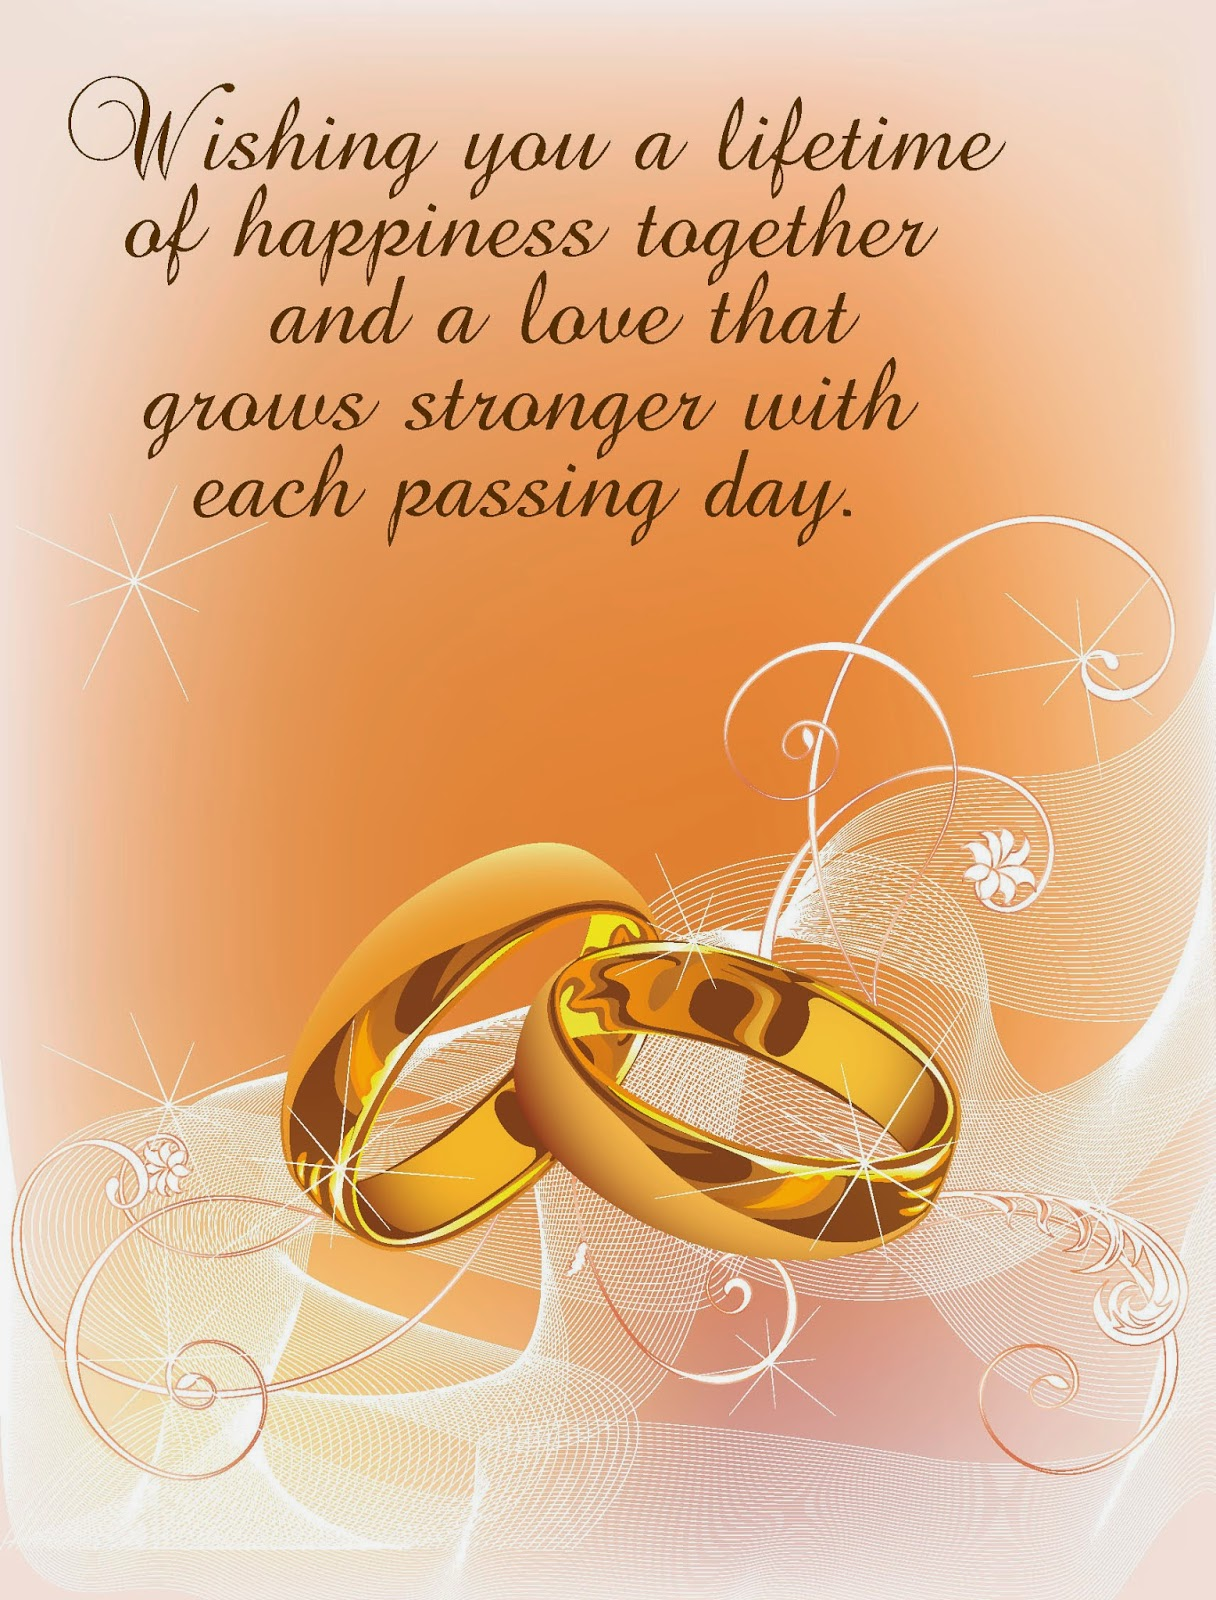 Christian Marriage Quotes Wishing Love And Happiness Quotes And I Wish To You Joy Happiness